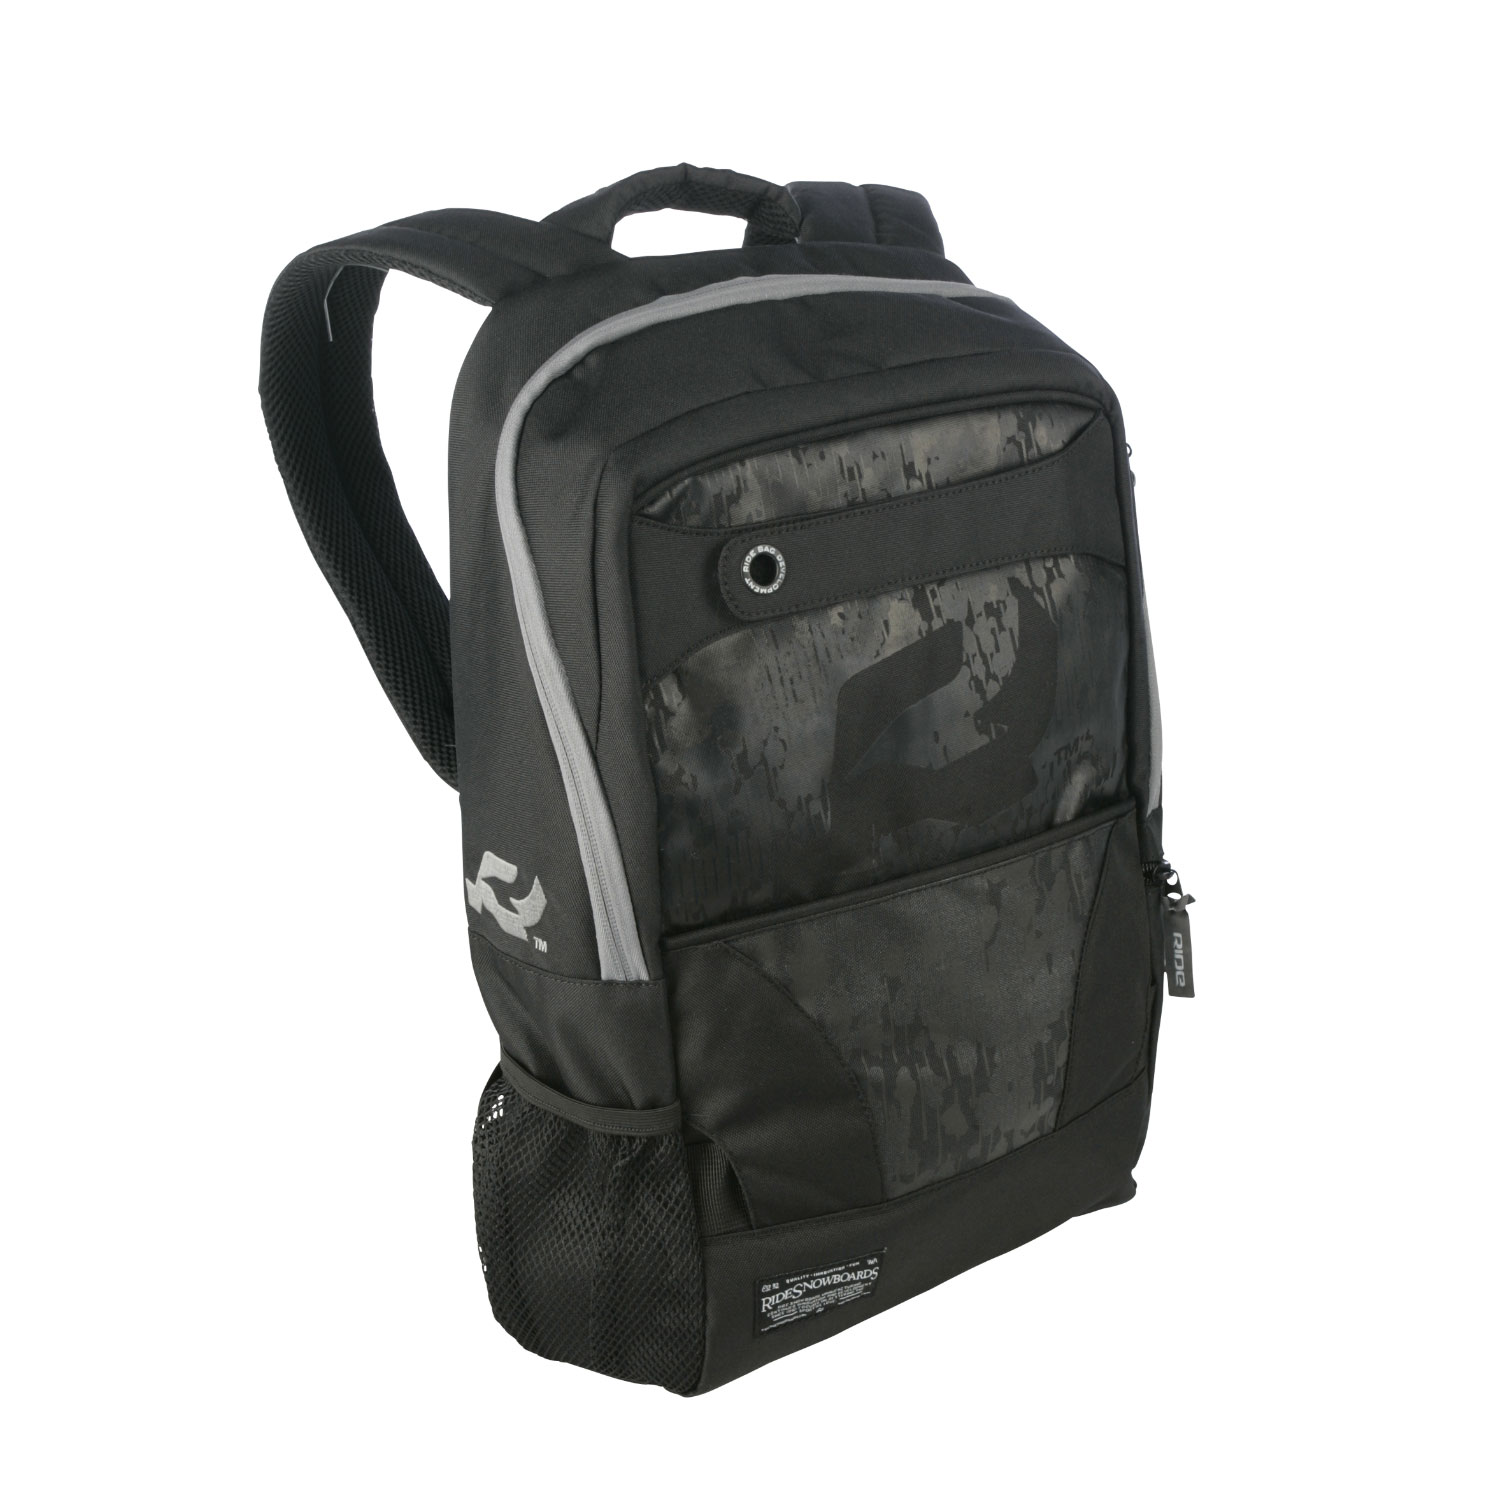 Skateboard Cruise Around With Your Day-to-Day EssentialsKey Features of the Ride Rook Backpack: Slim Profile Pack Carries Skate Deck Vertical Lower Straps Stash to Hide When Not in Use Internal Padded Laptop Pocket Front Panel Stuff Pocket Padded Zipper Pocket for Your Shades Side Mesh Pocket Zippered Side Pocket - $23.95